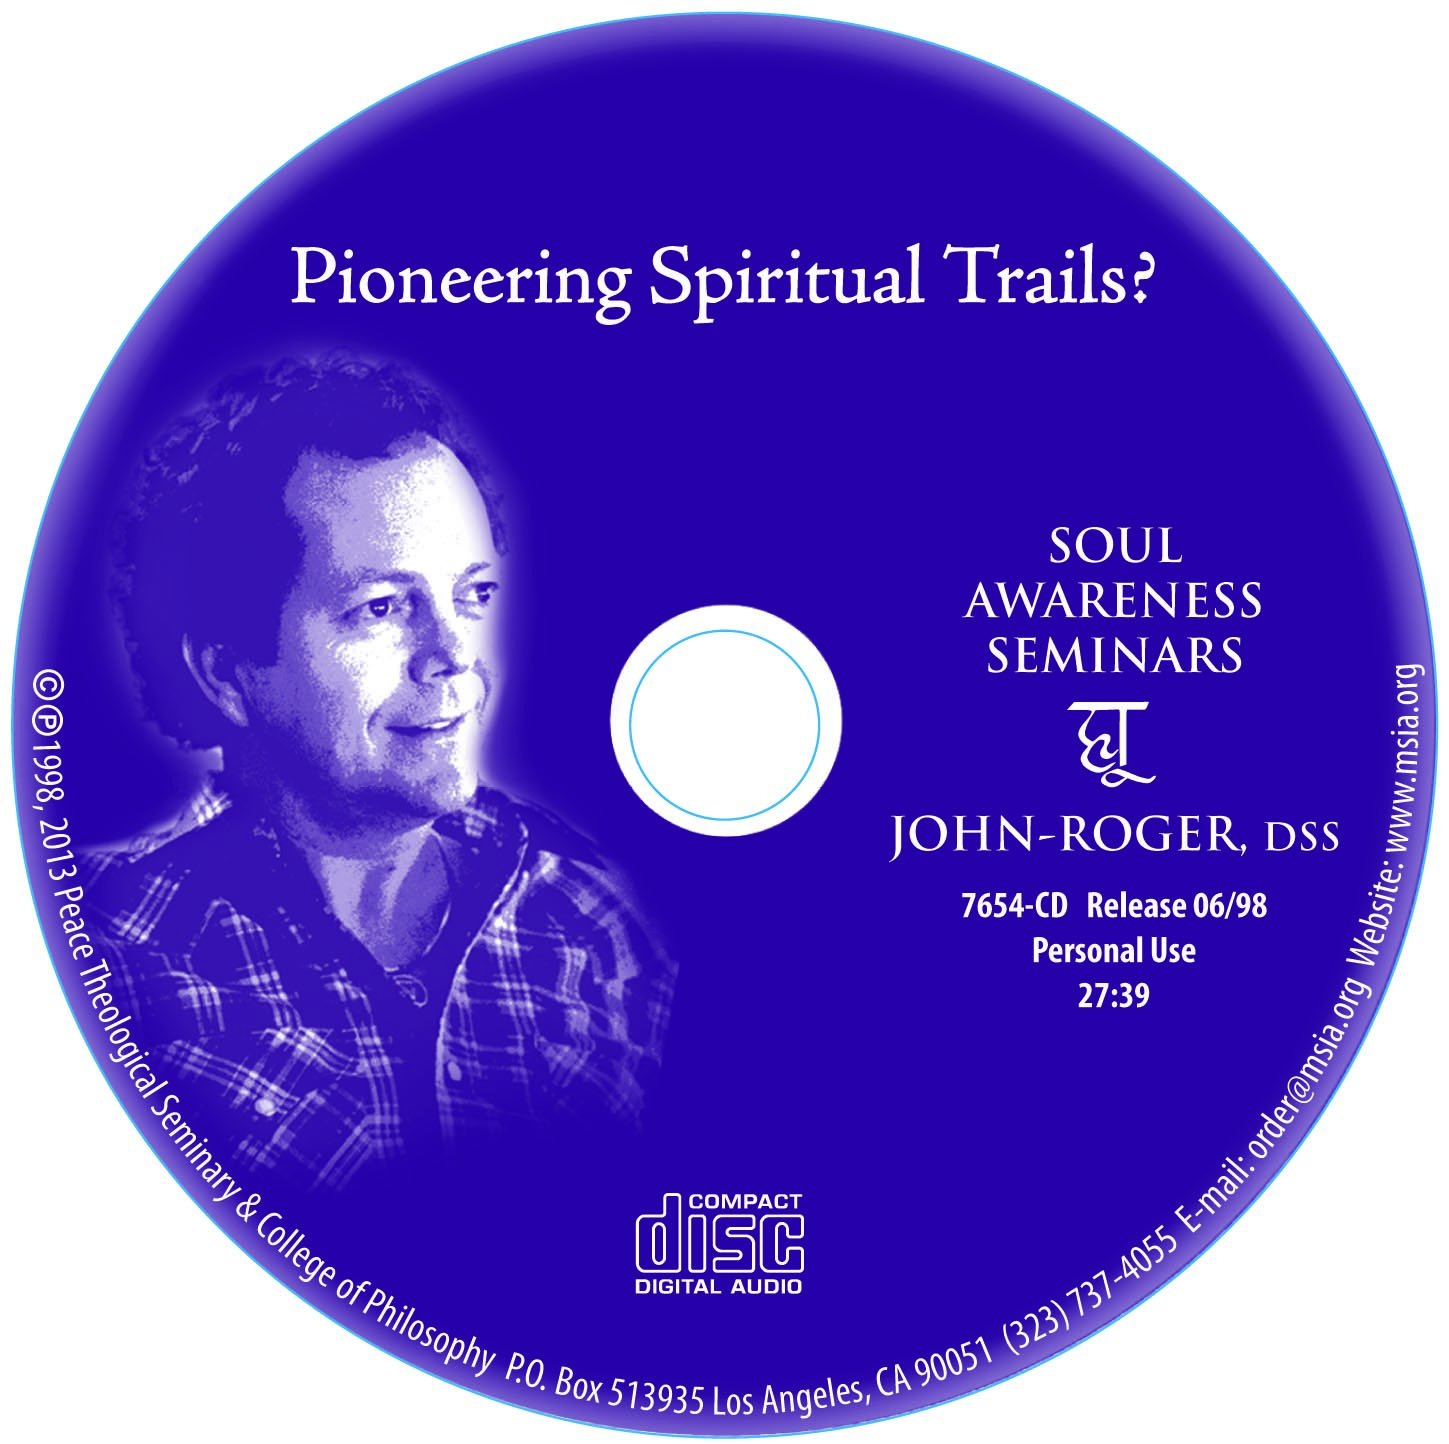 Pioneering Spiritual Trails? MP3